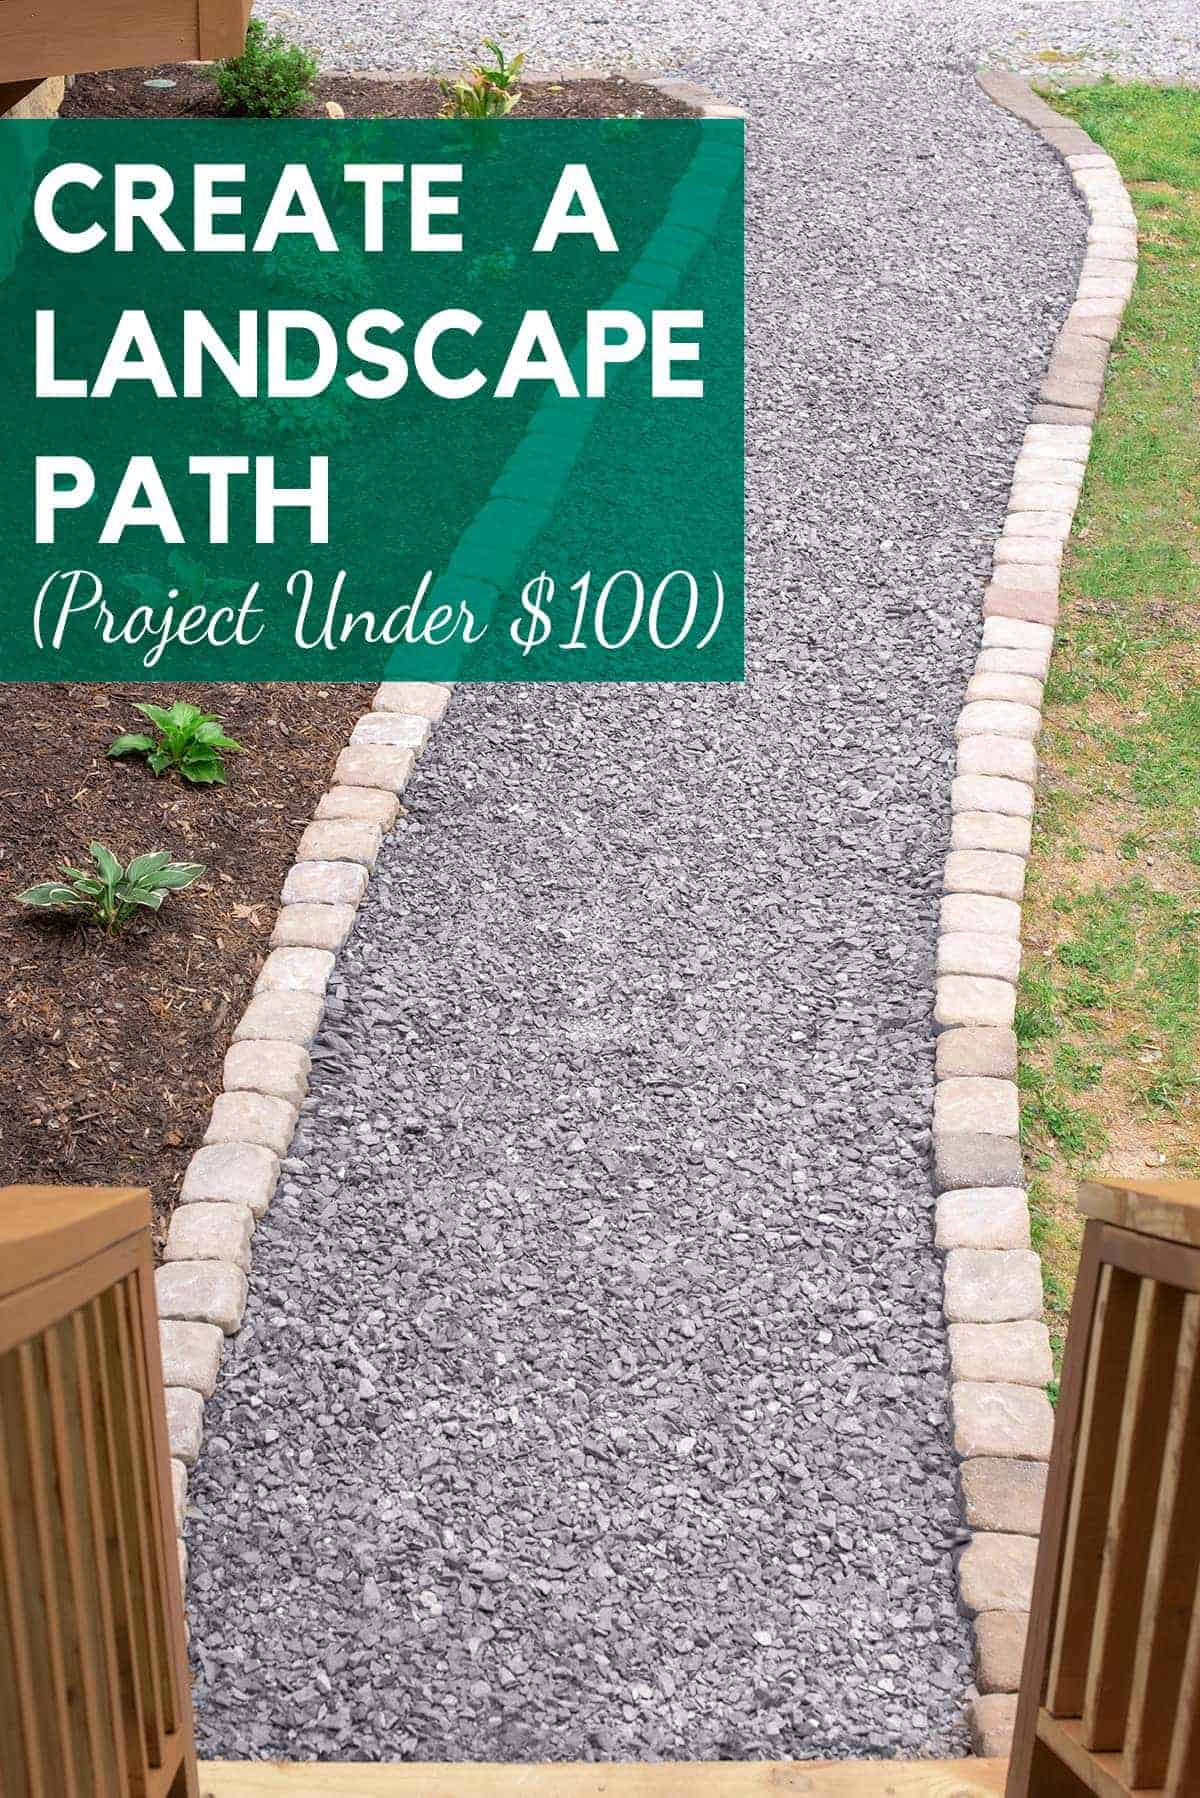 Gravel walkway under $100 diy project. Gravel walkway flanked with larger light gray stones leading to porch railing. Small plantings in mulch and grass flabk walkway.